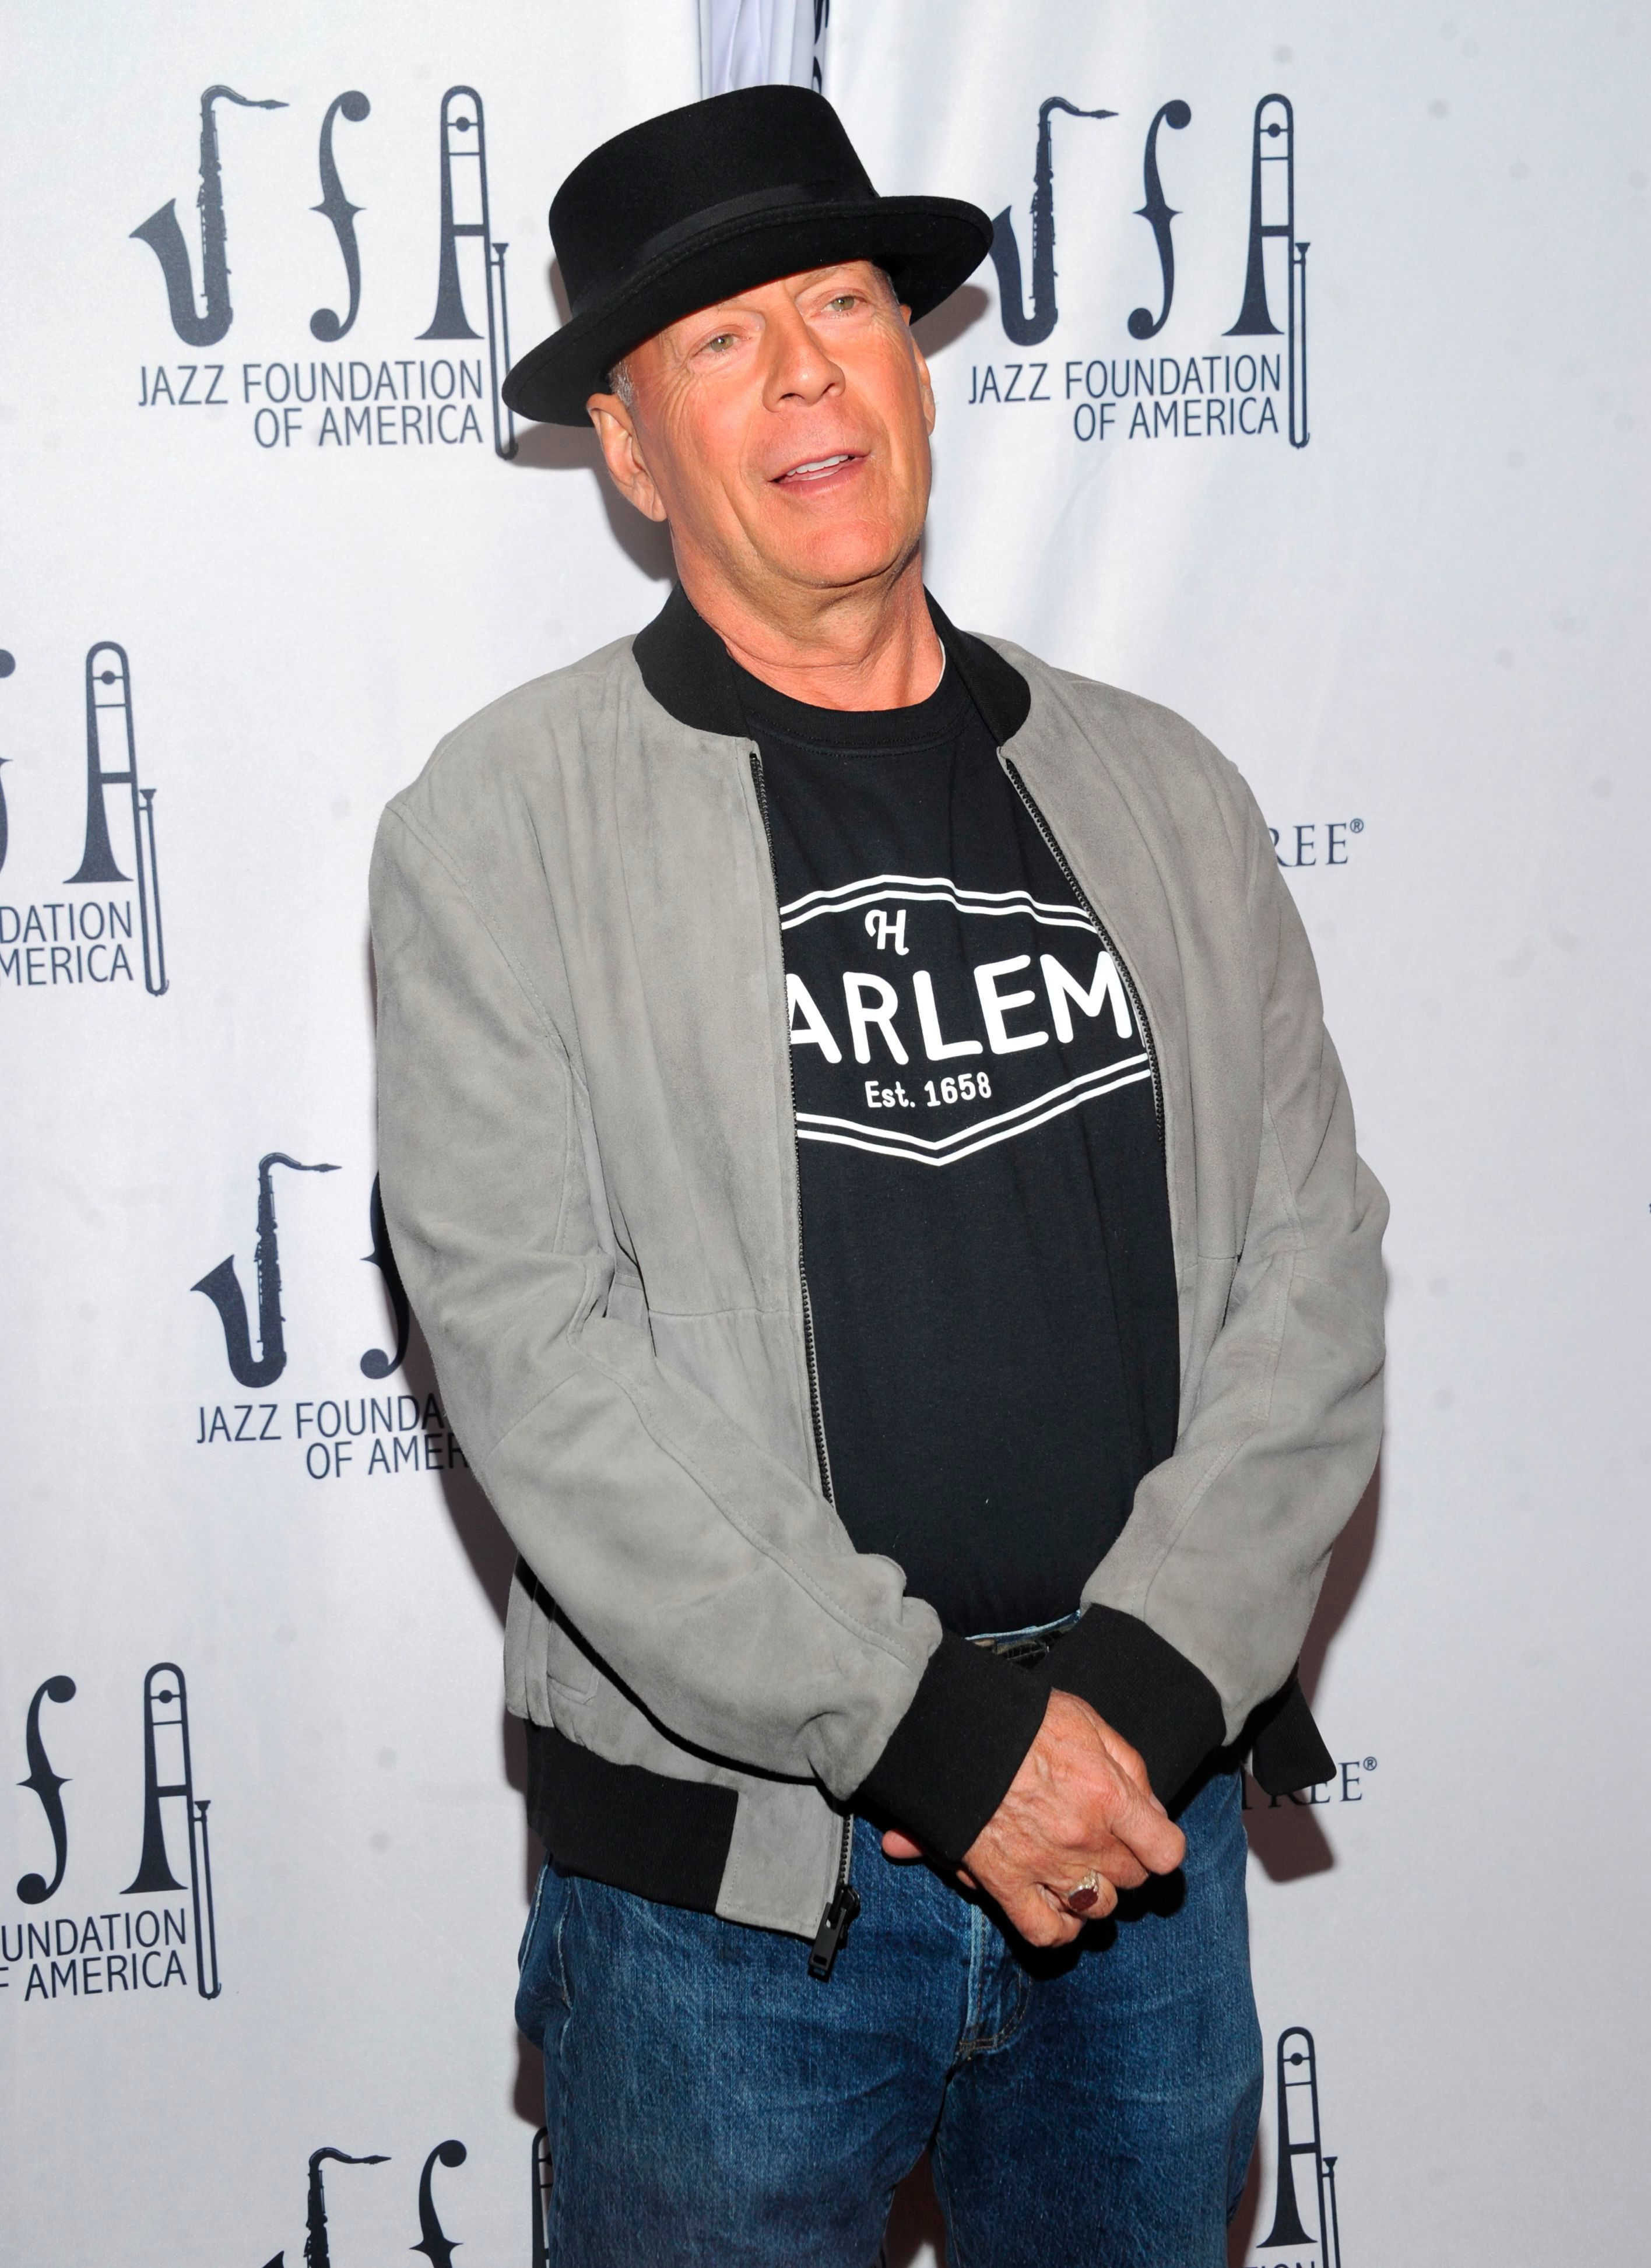 """Bruce Willis walks the red carpet at the Jazz Foundation of America's 17th annual """"A Great Night In Harlem"""" gala concert at The Apollo Theater in New York City on April 4, 2019."""